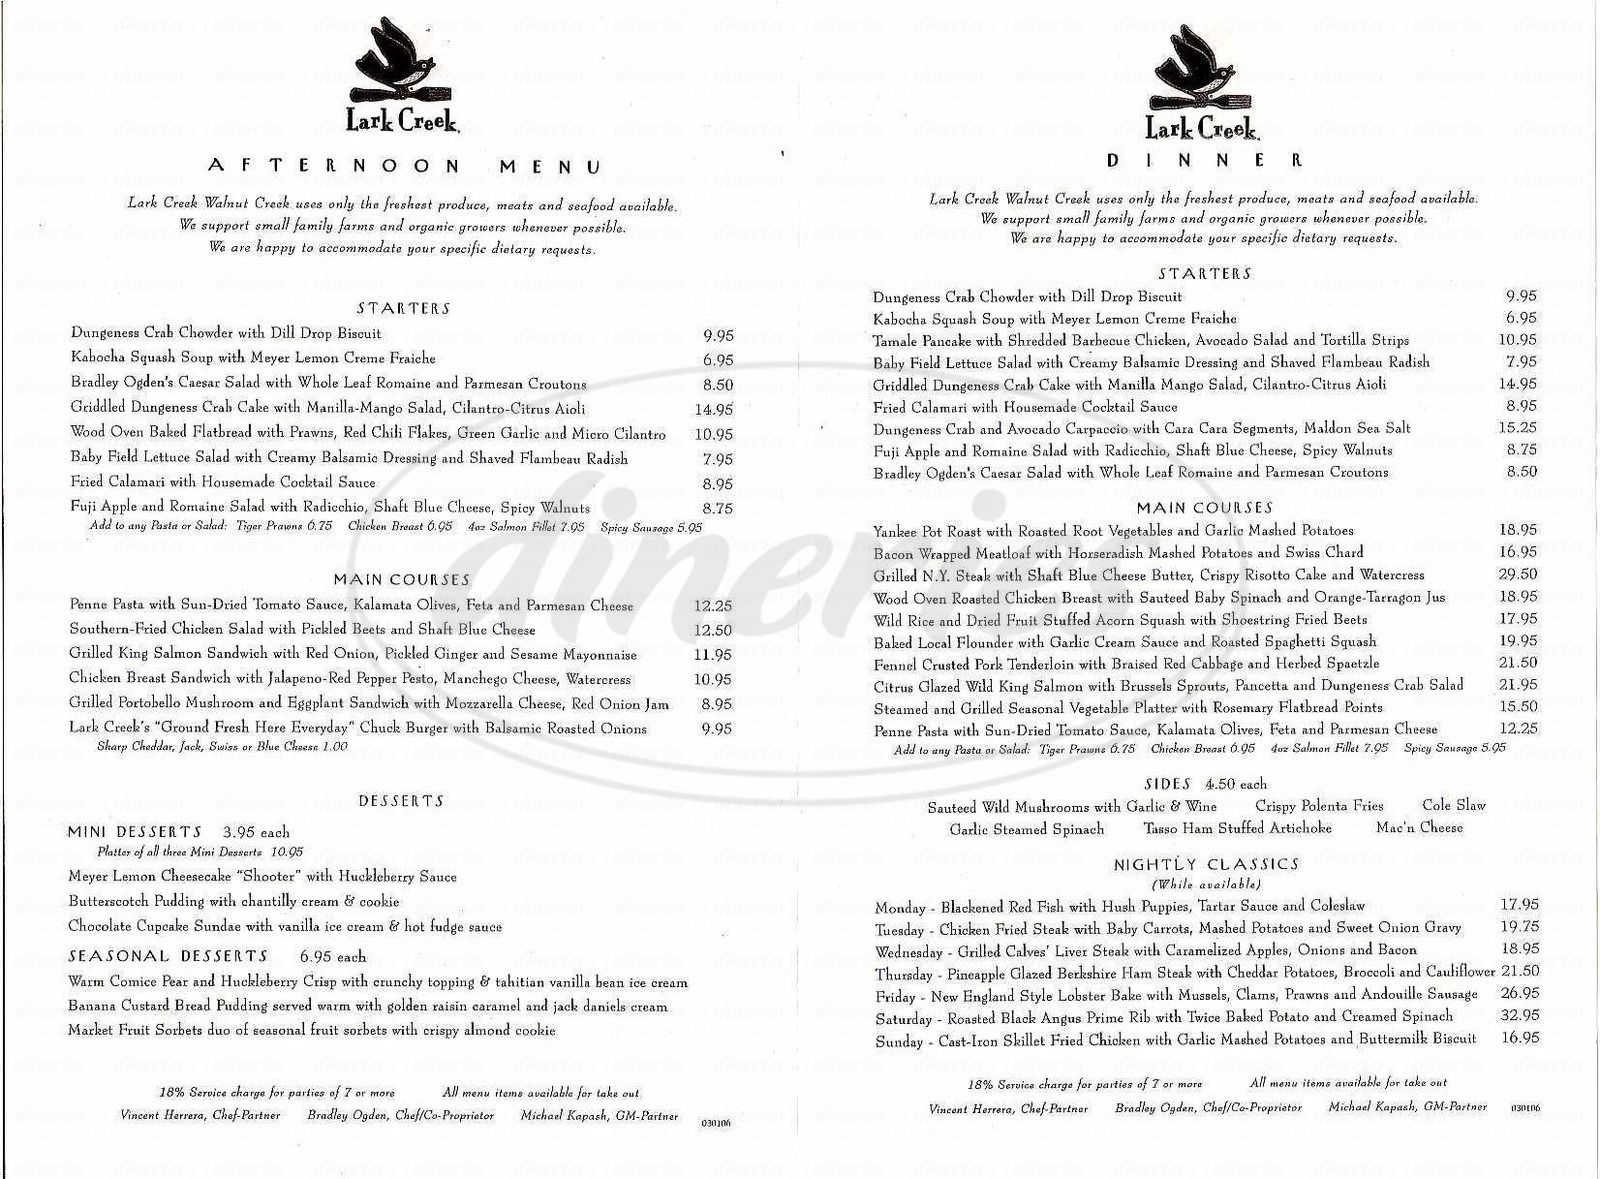 menu for Lark Creek